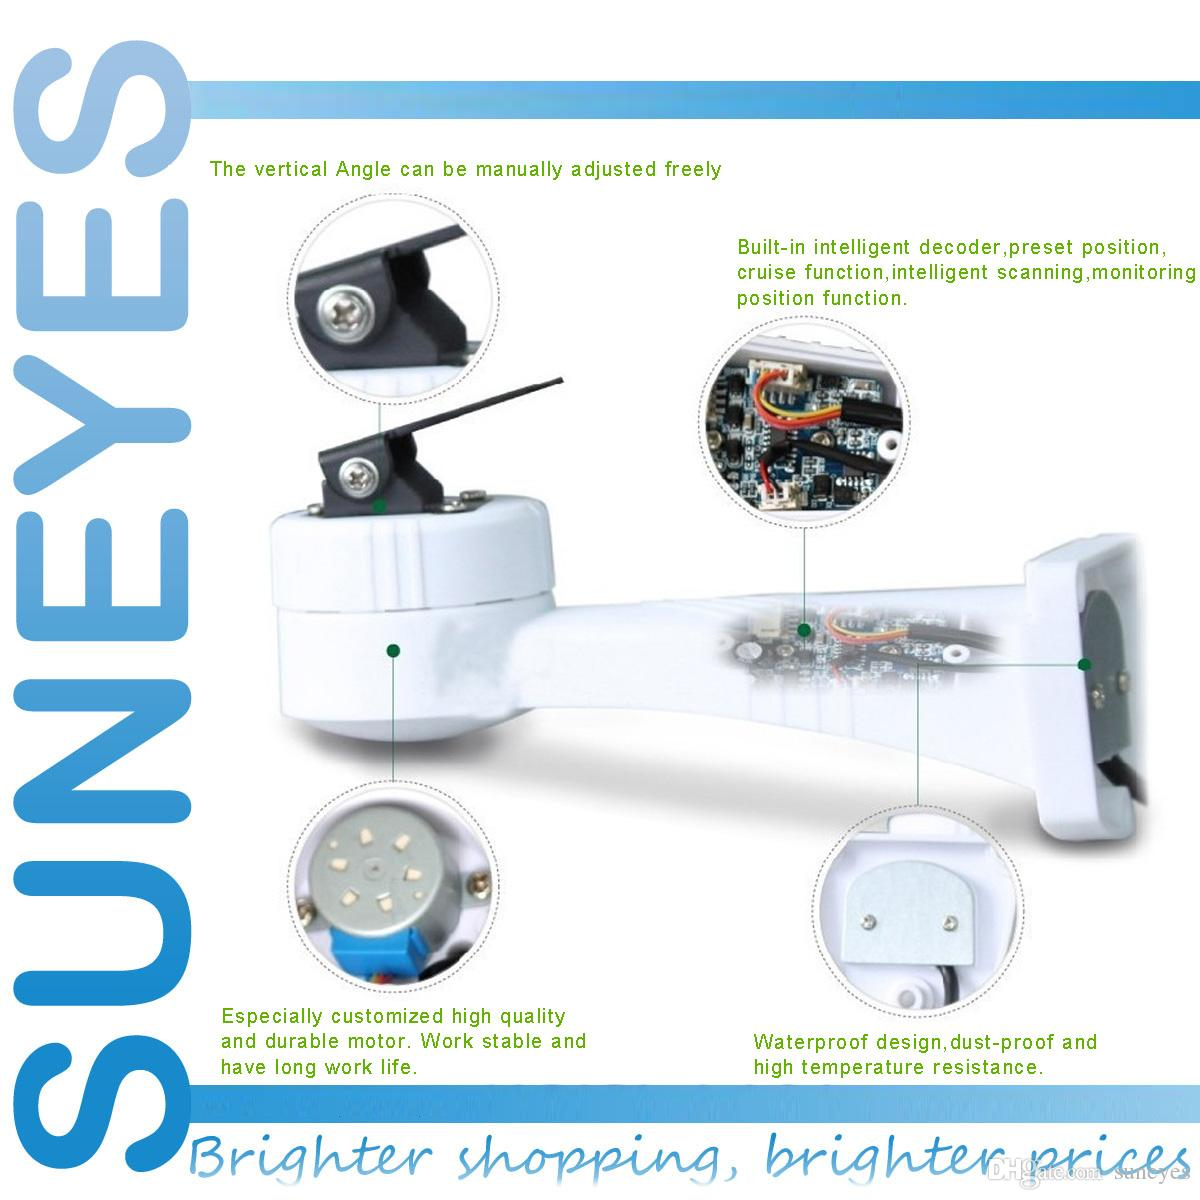 2018 Suneyes Ptz Bracket For Cctv Ip Camera Or Only